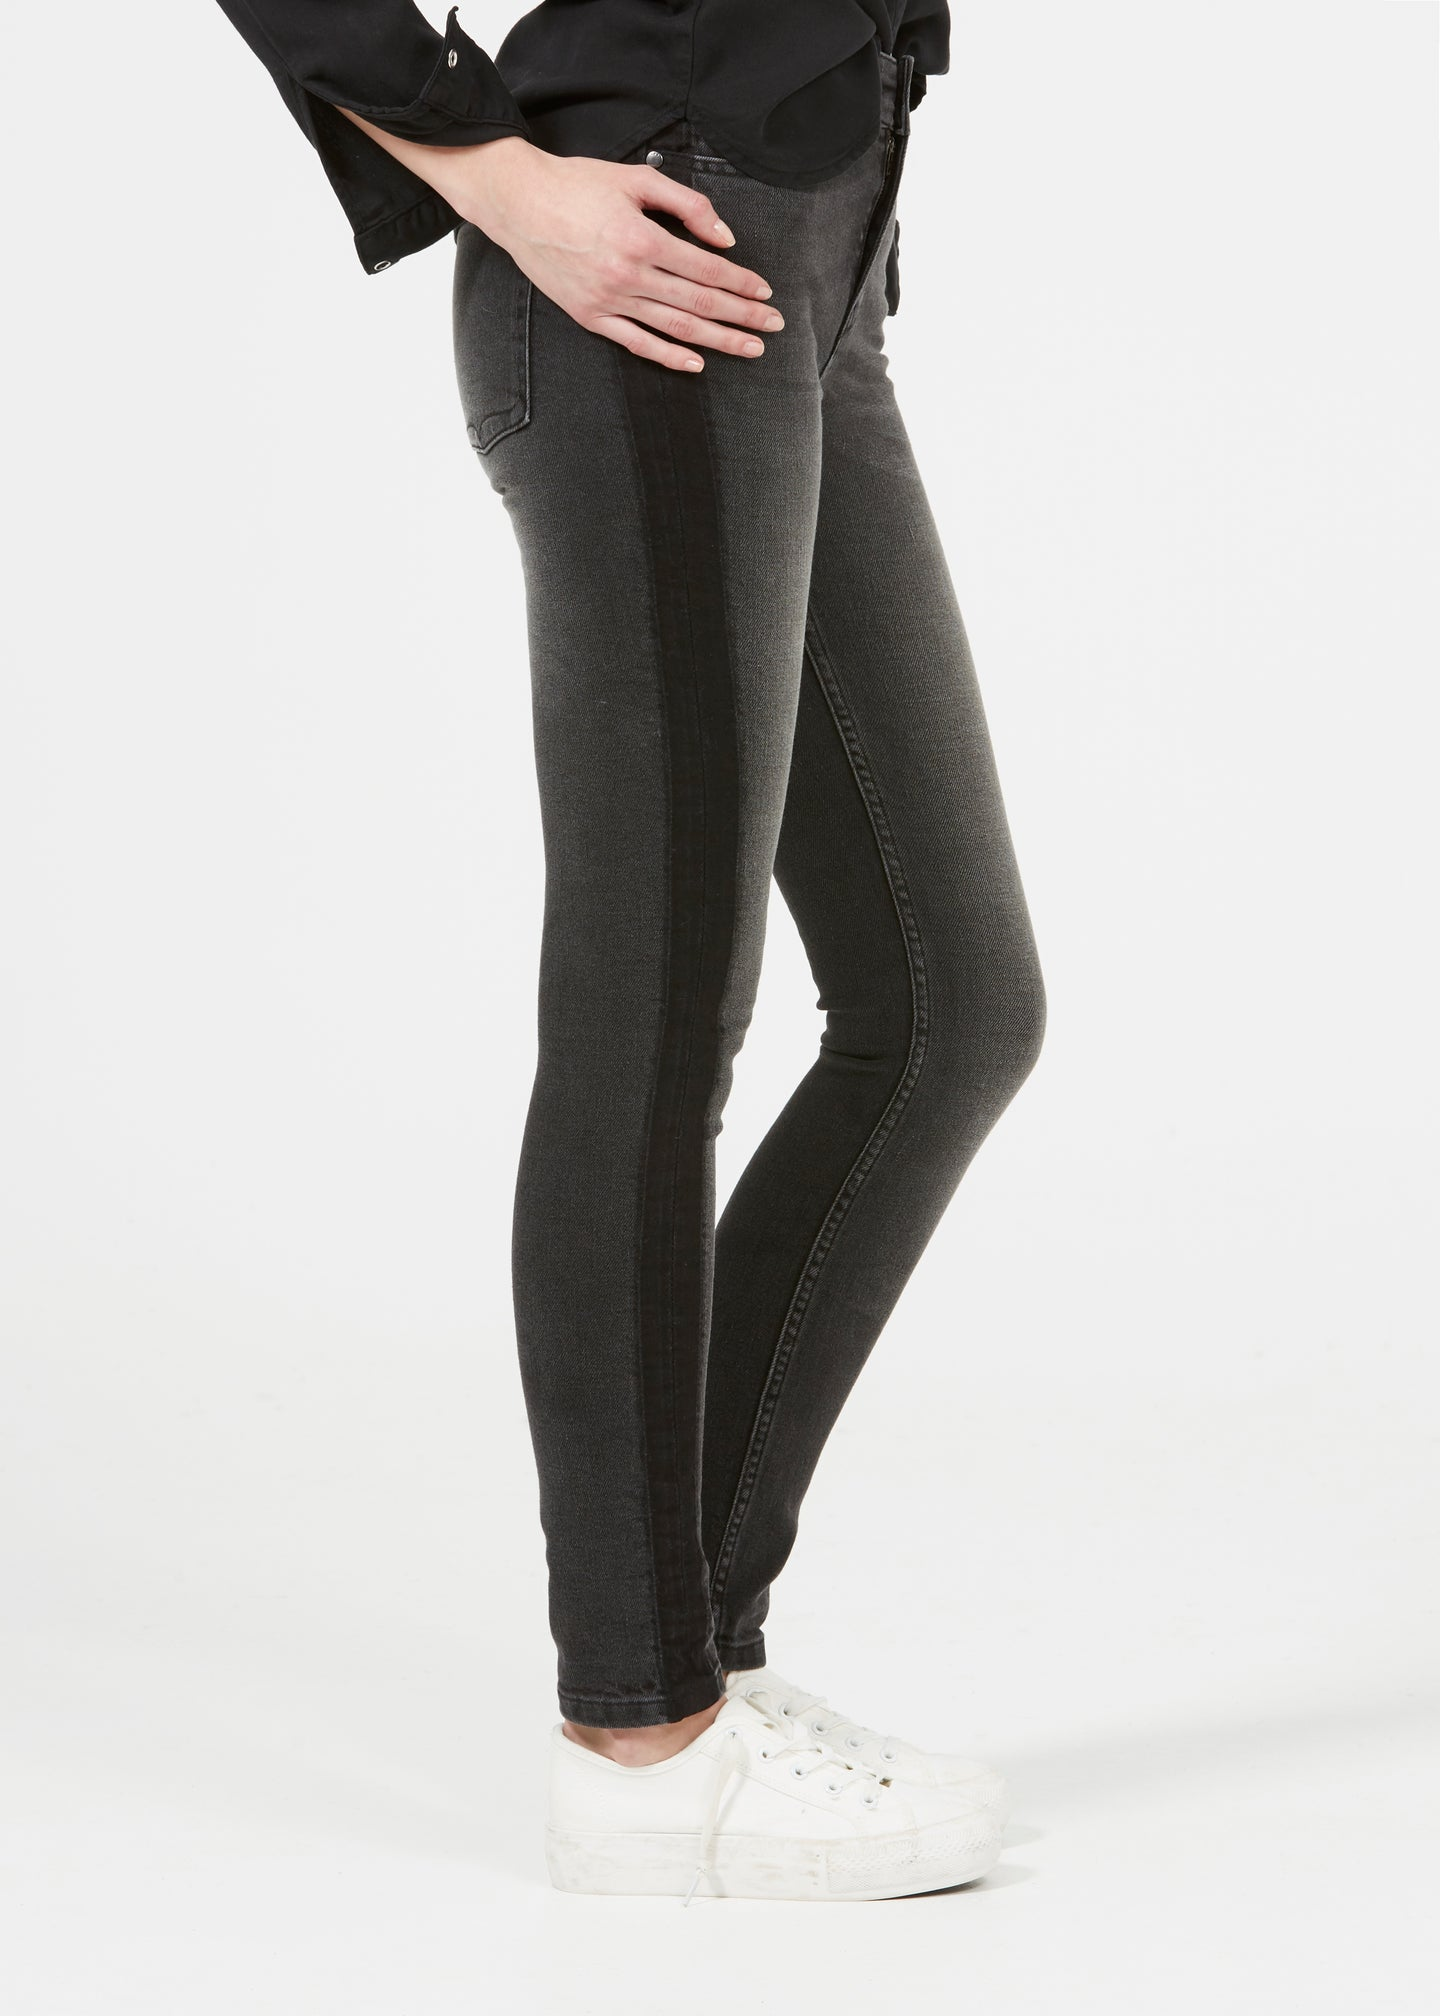 Rizzo High Top Ankle Skinny Jeans - Faster Noir